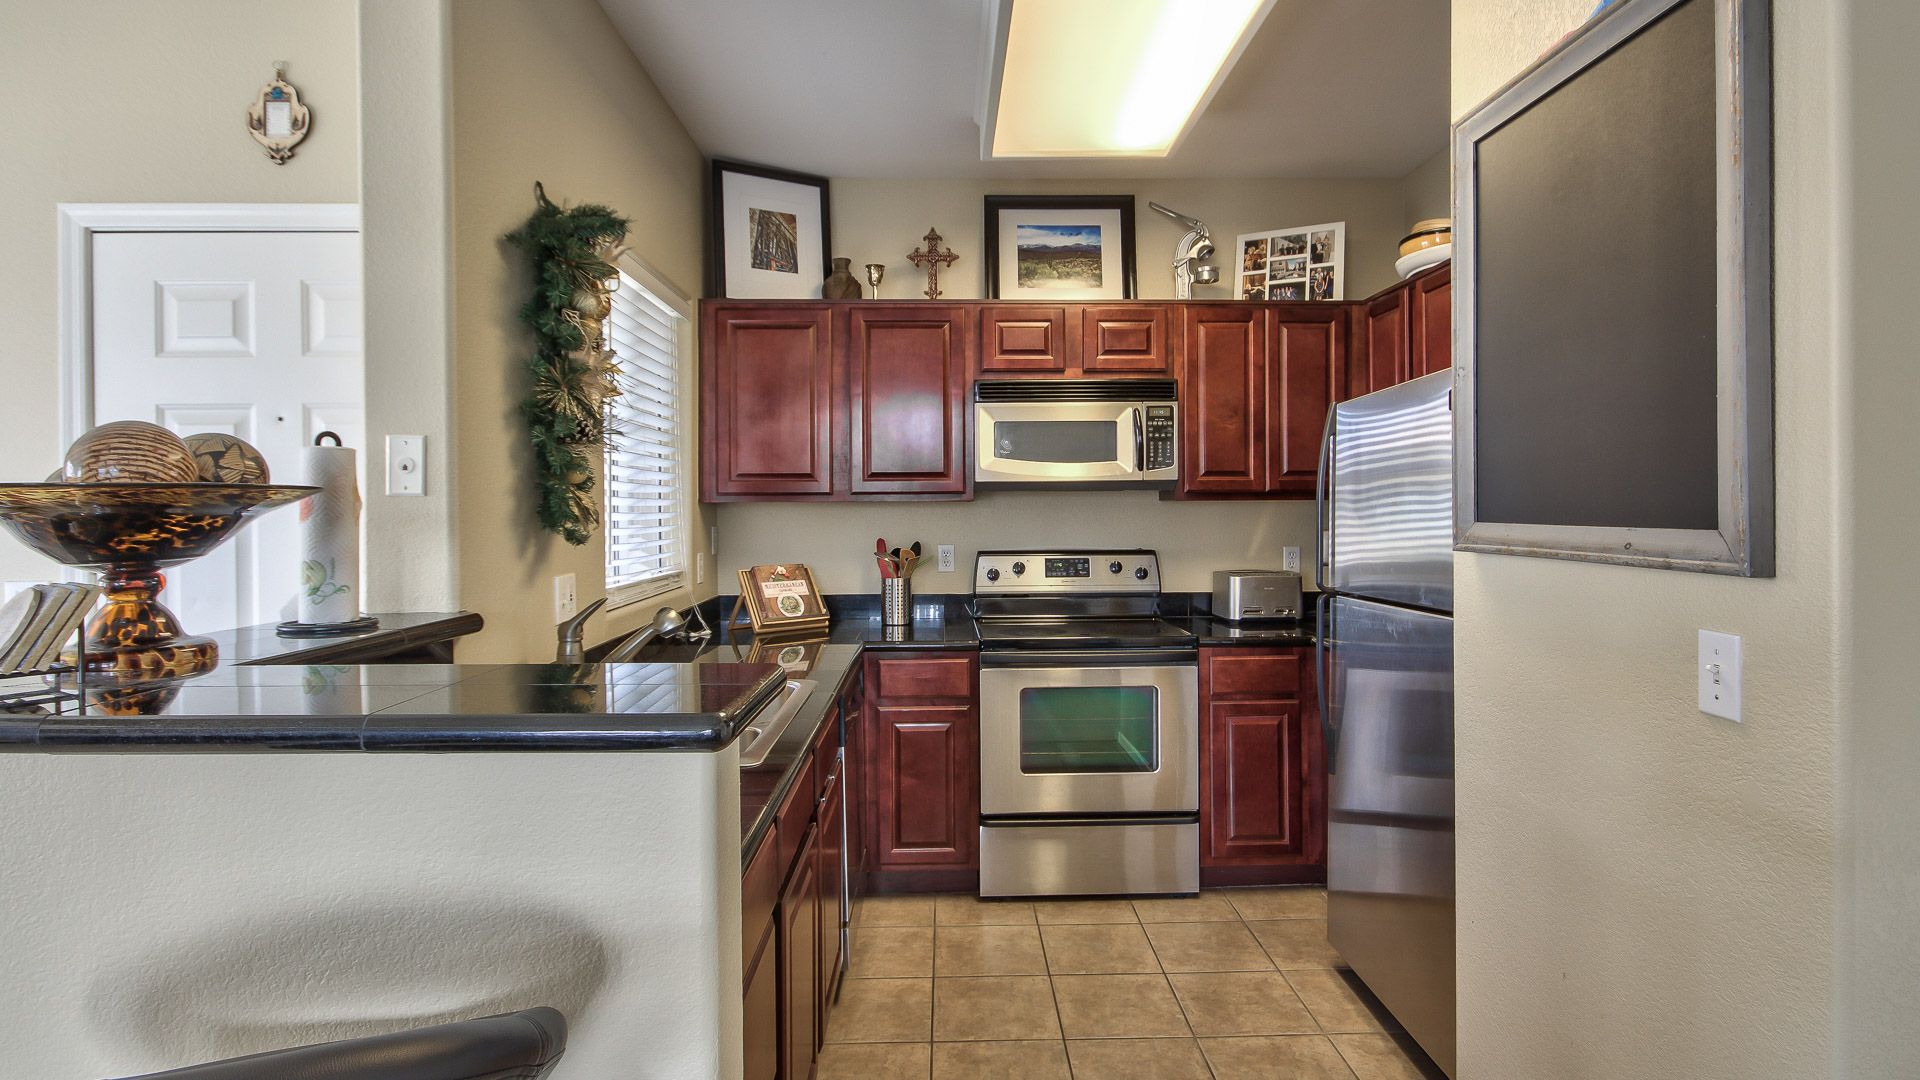 Appliances Scottsdale Modern Kitchen With Stainless Steel Appliances Granite Counters